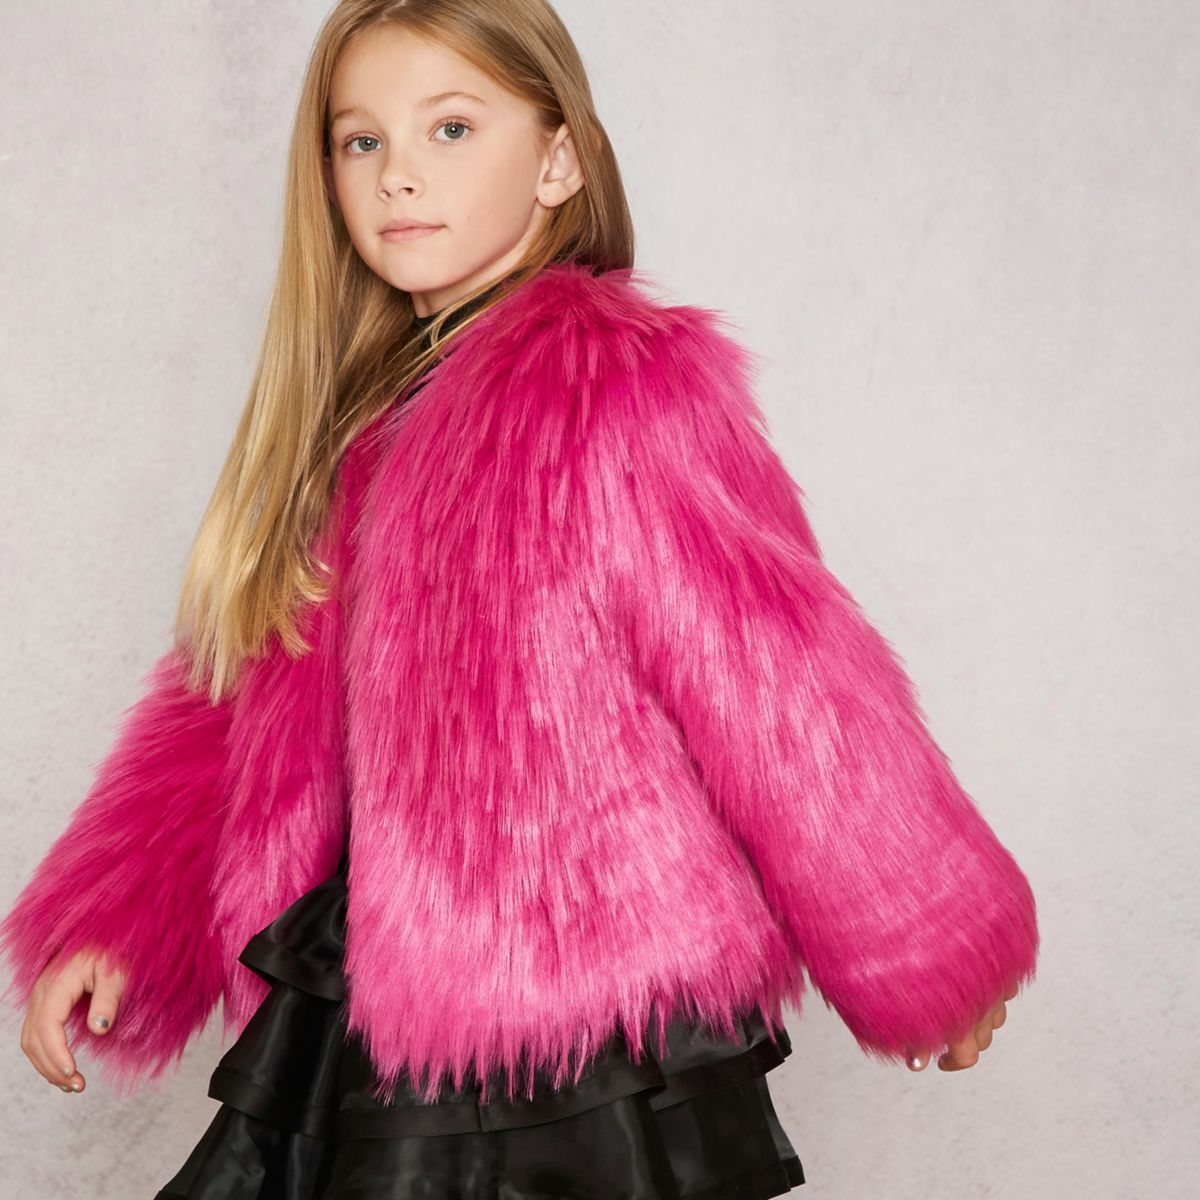 Girls pink RI Studio faux fur brooch jacket